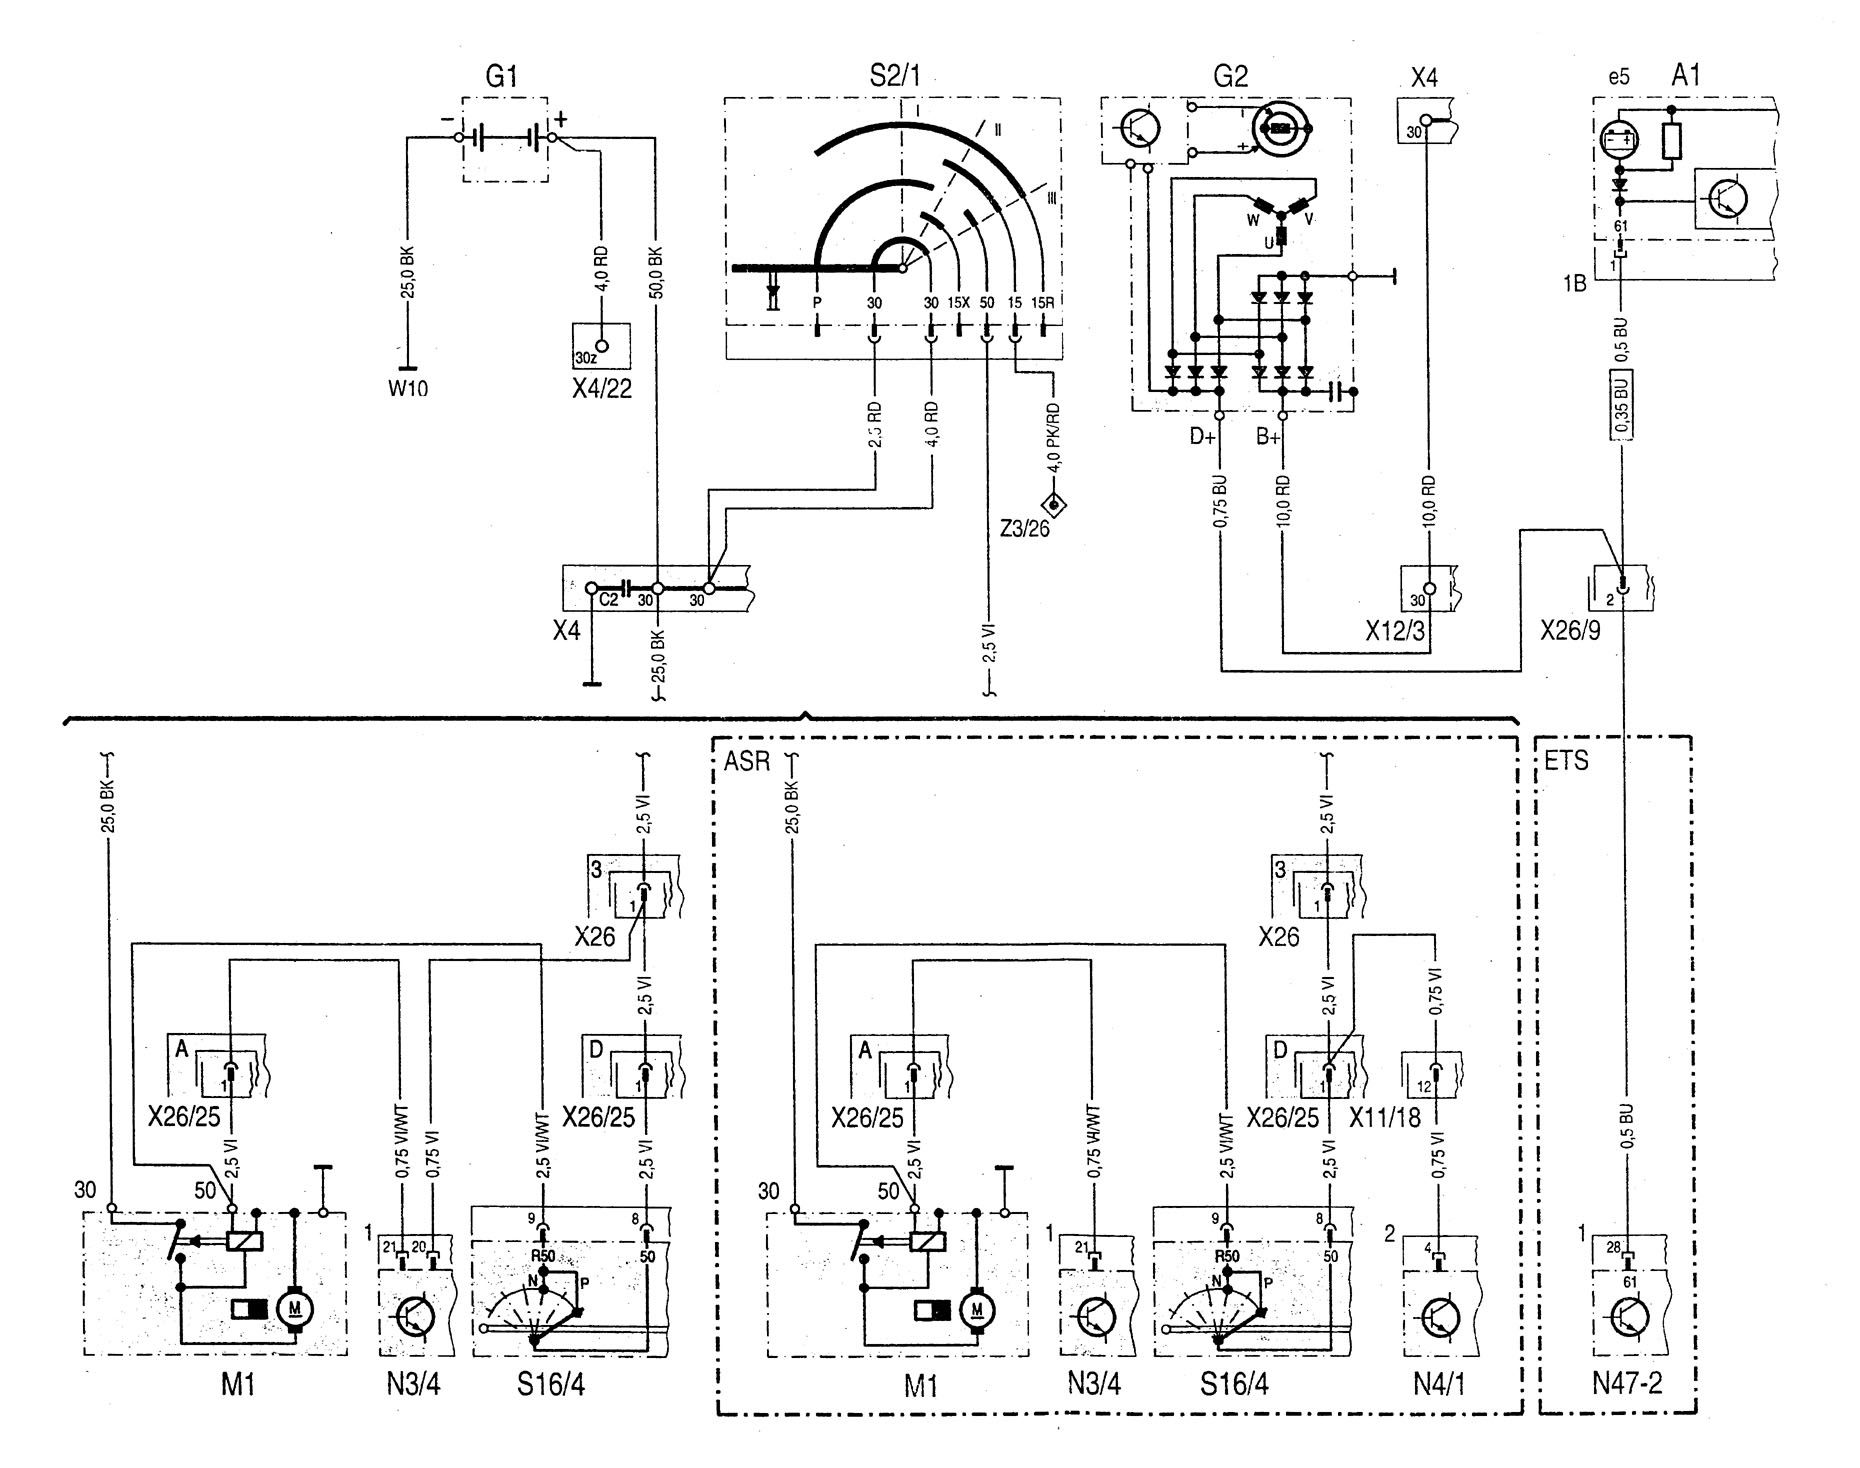 mercedes benz e420 1997 engine diagram  mercedes  auto